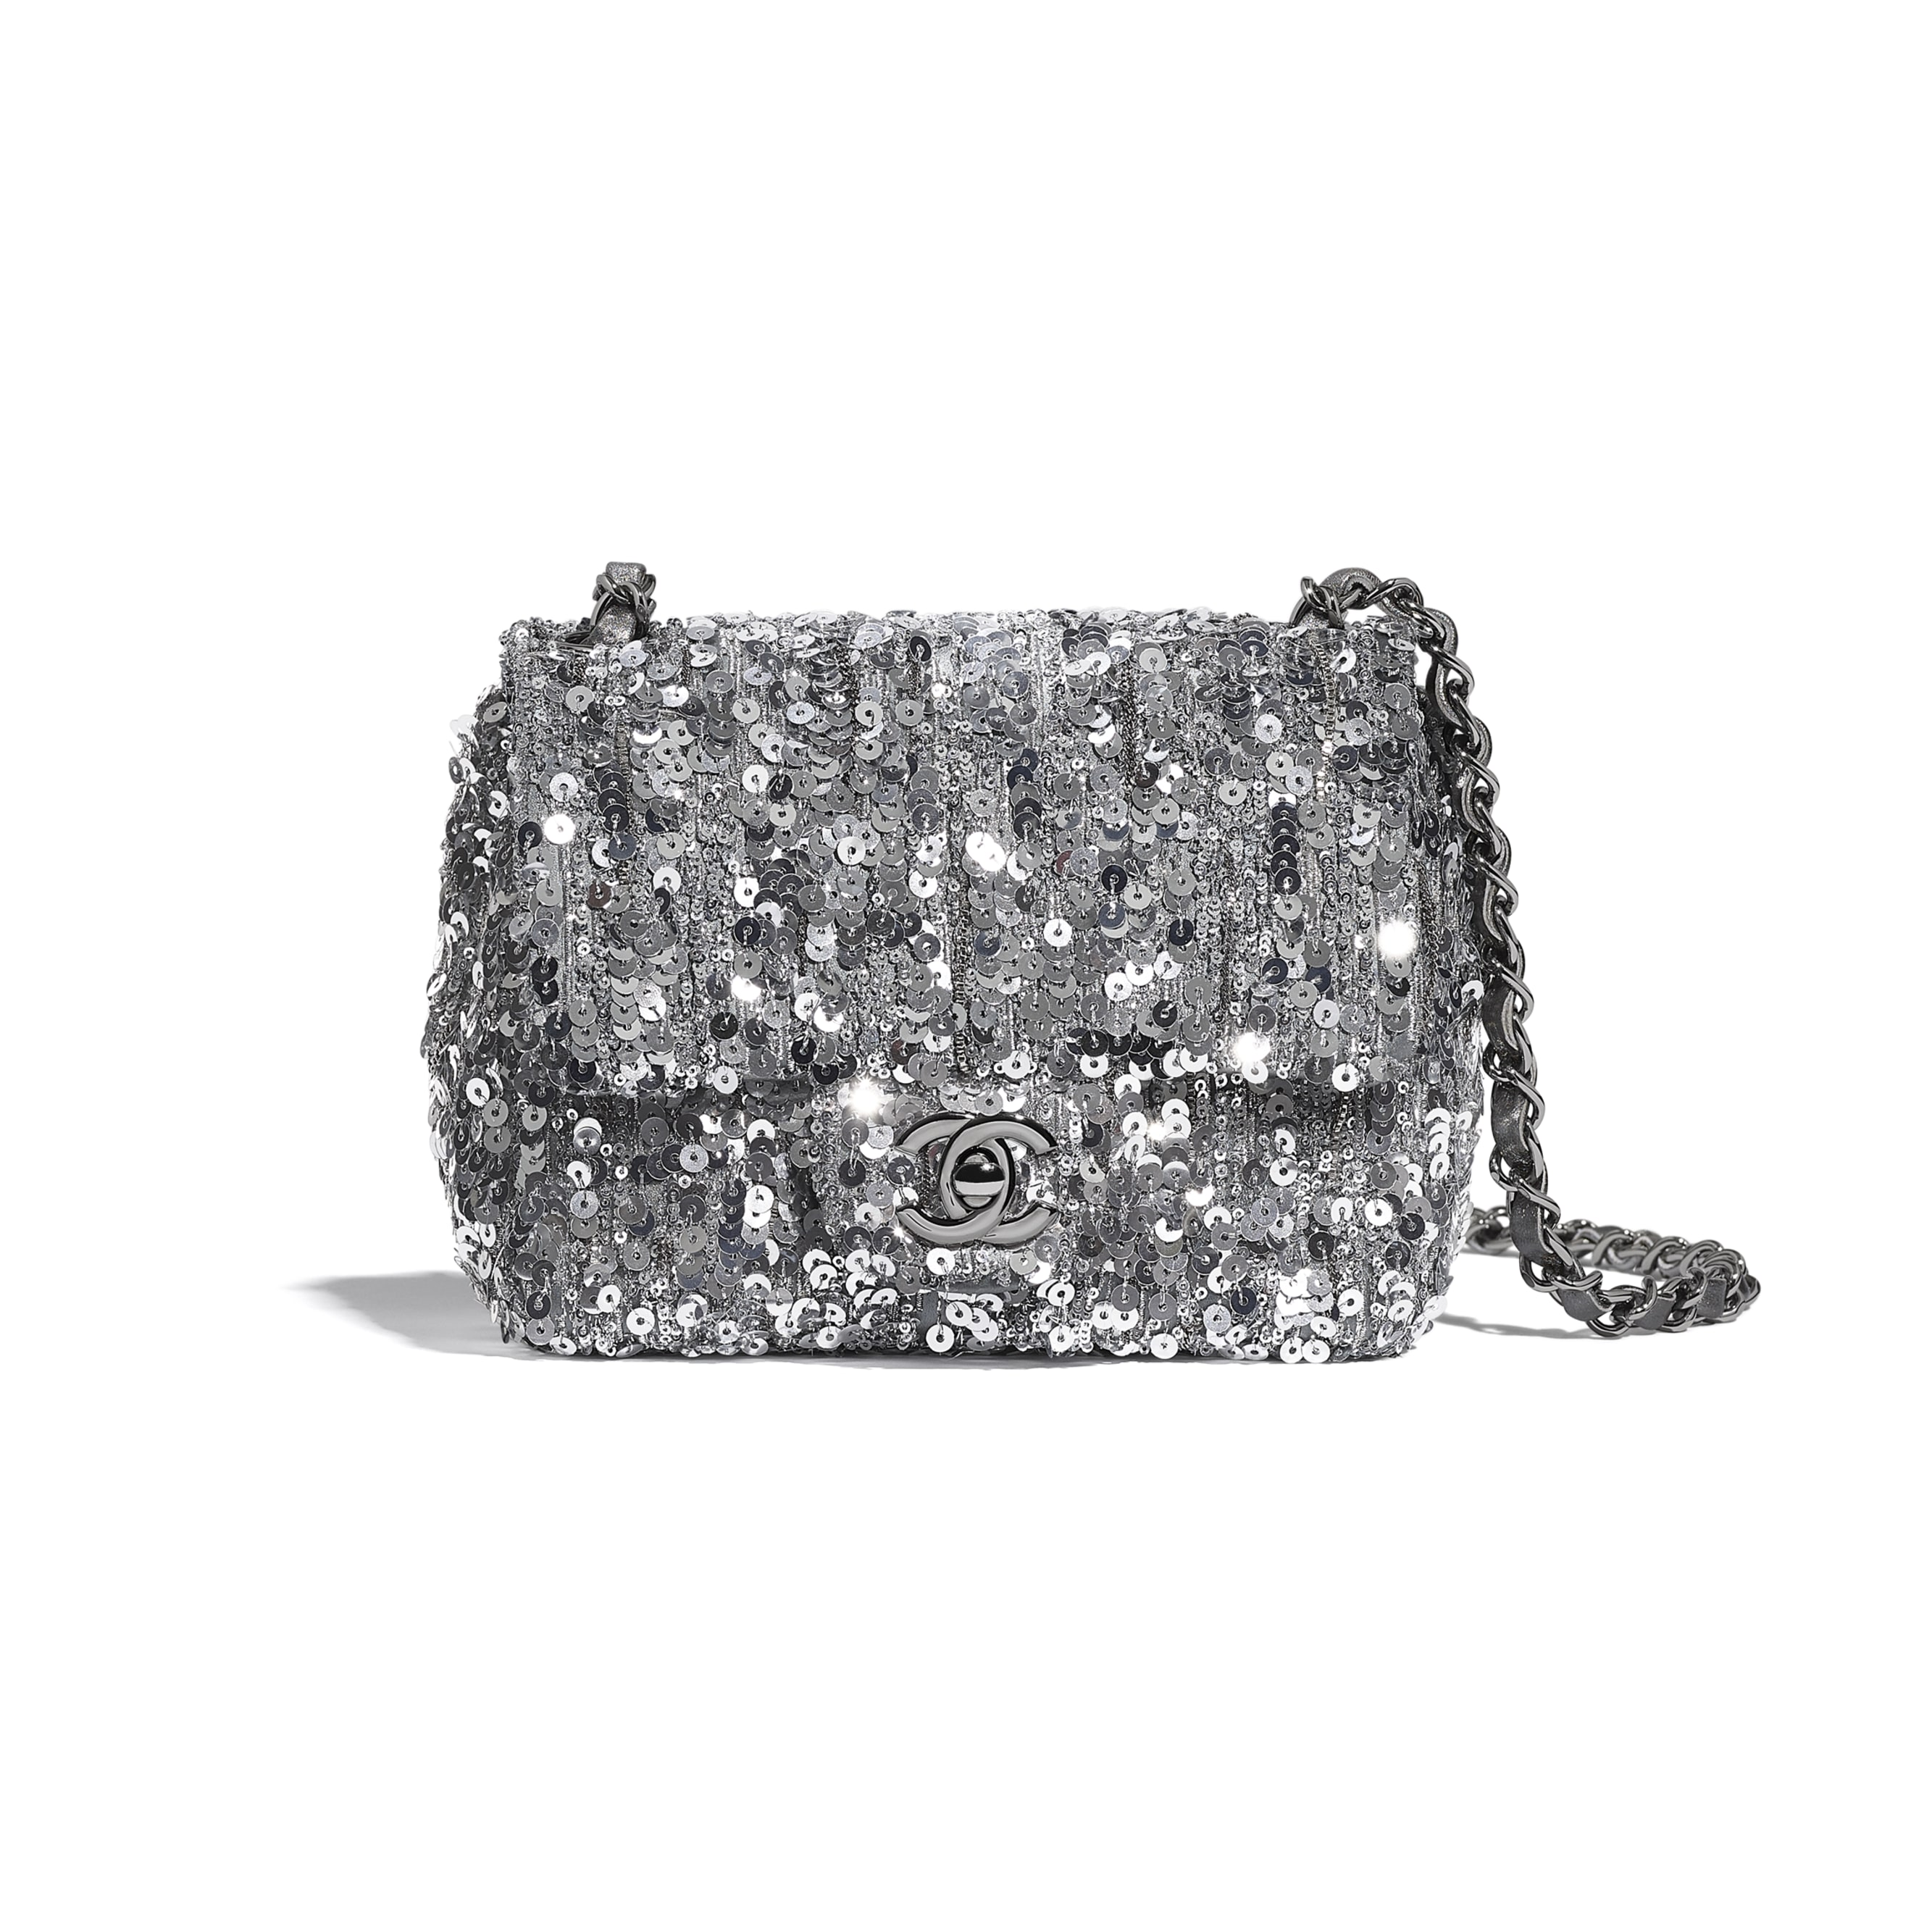 Mini Flap Bag - Silver - Sequins & Ruthenium-Finish Metal - CHANEL - Default view - see standard sized version